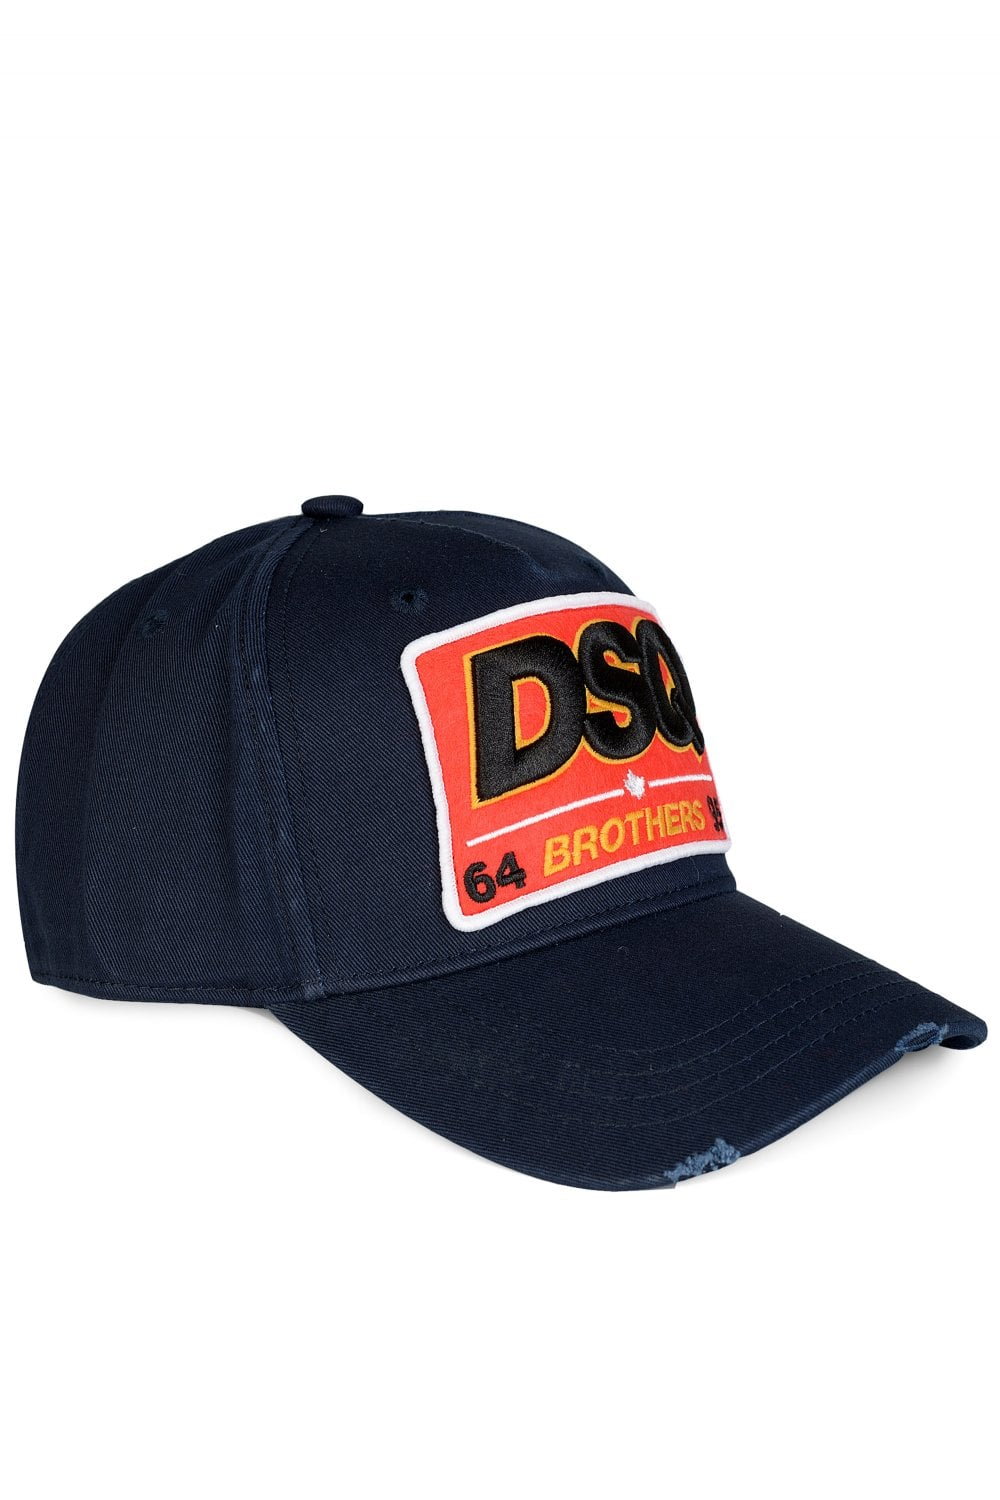 DSQUARED2 DSQ Patch Baseball Cap - Clothing from Circle Fashion UK 5ab1f936a09